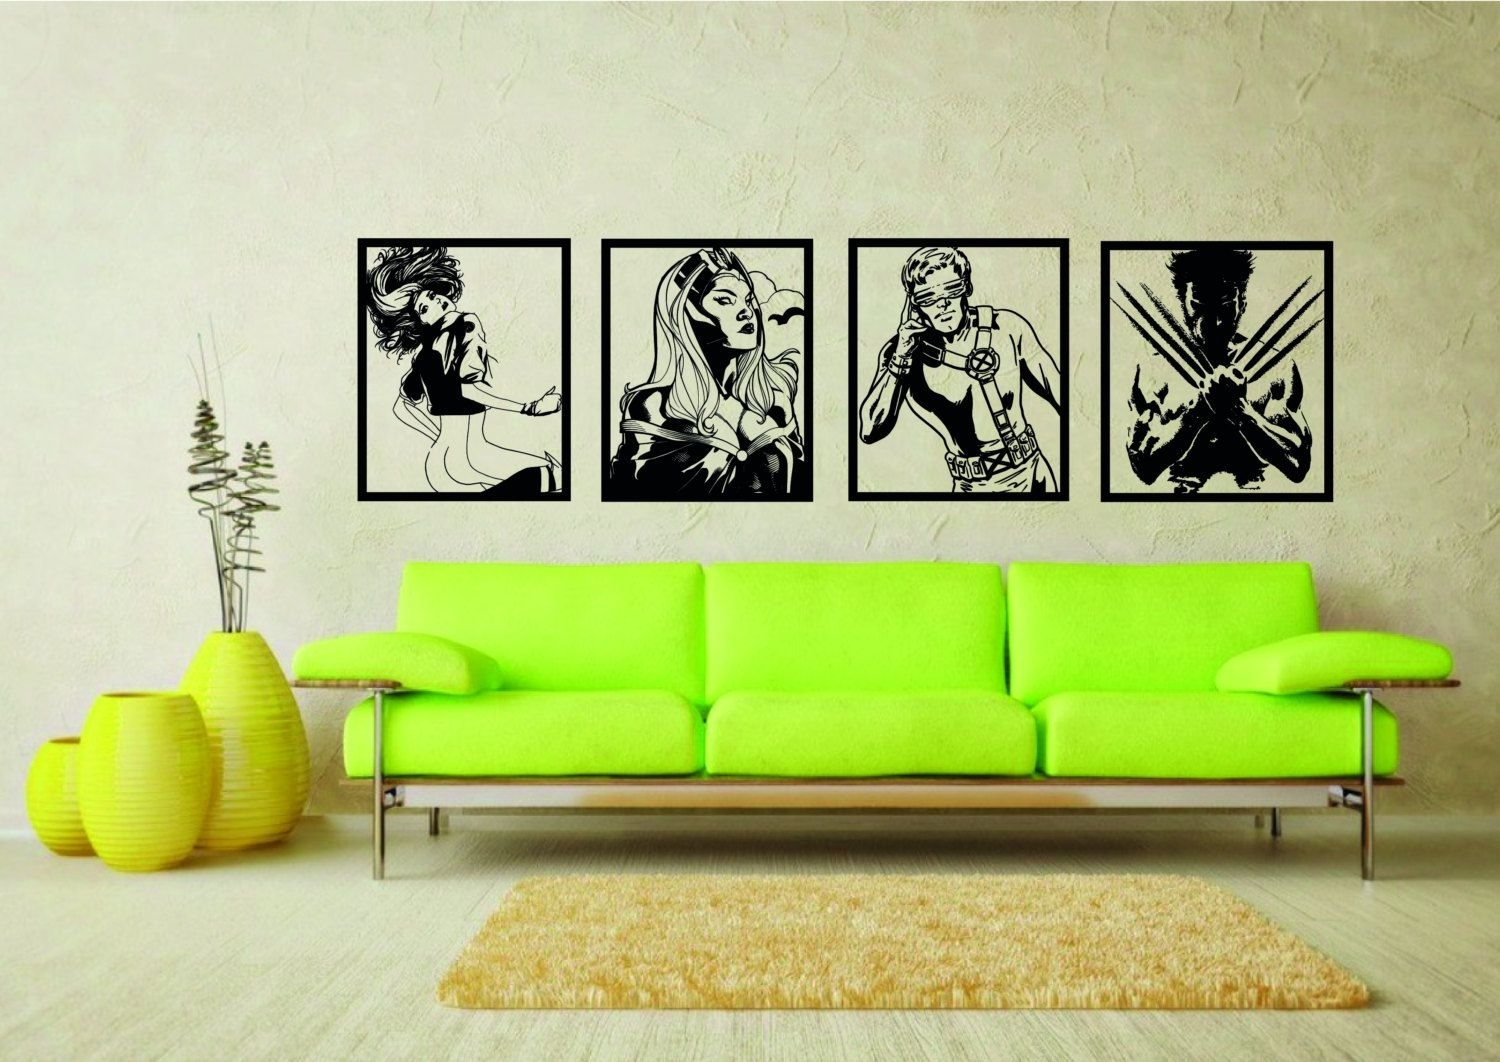 Large #marvel Comics X Men Wall Art #stickers – #vinyl Sticker Mural Pertaining To Current Wall Art For Men (Gallery 14 of 15)